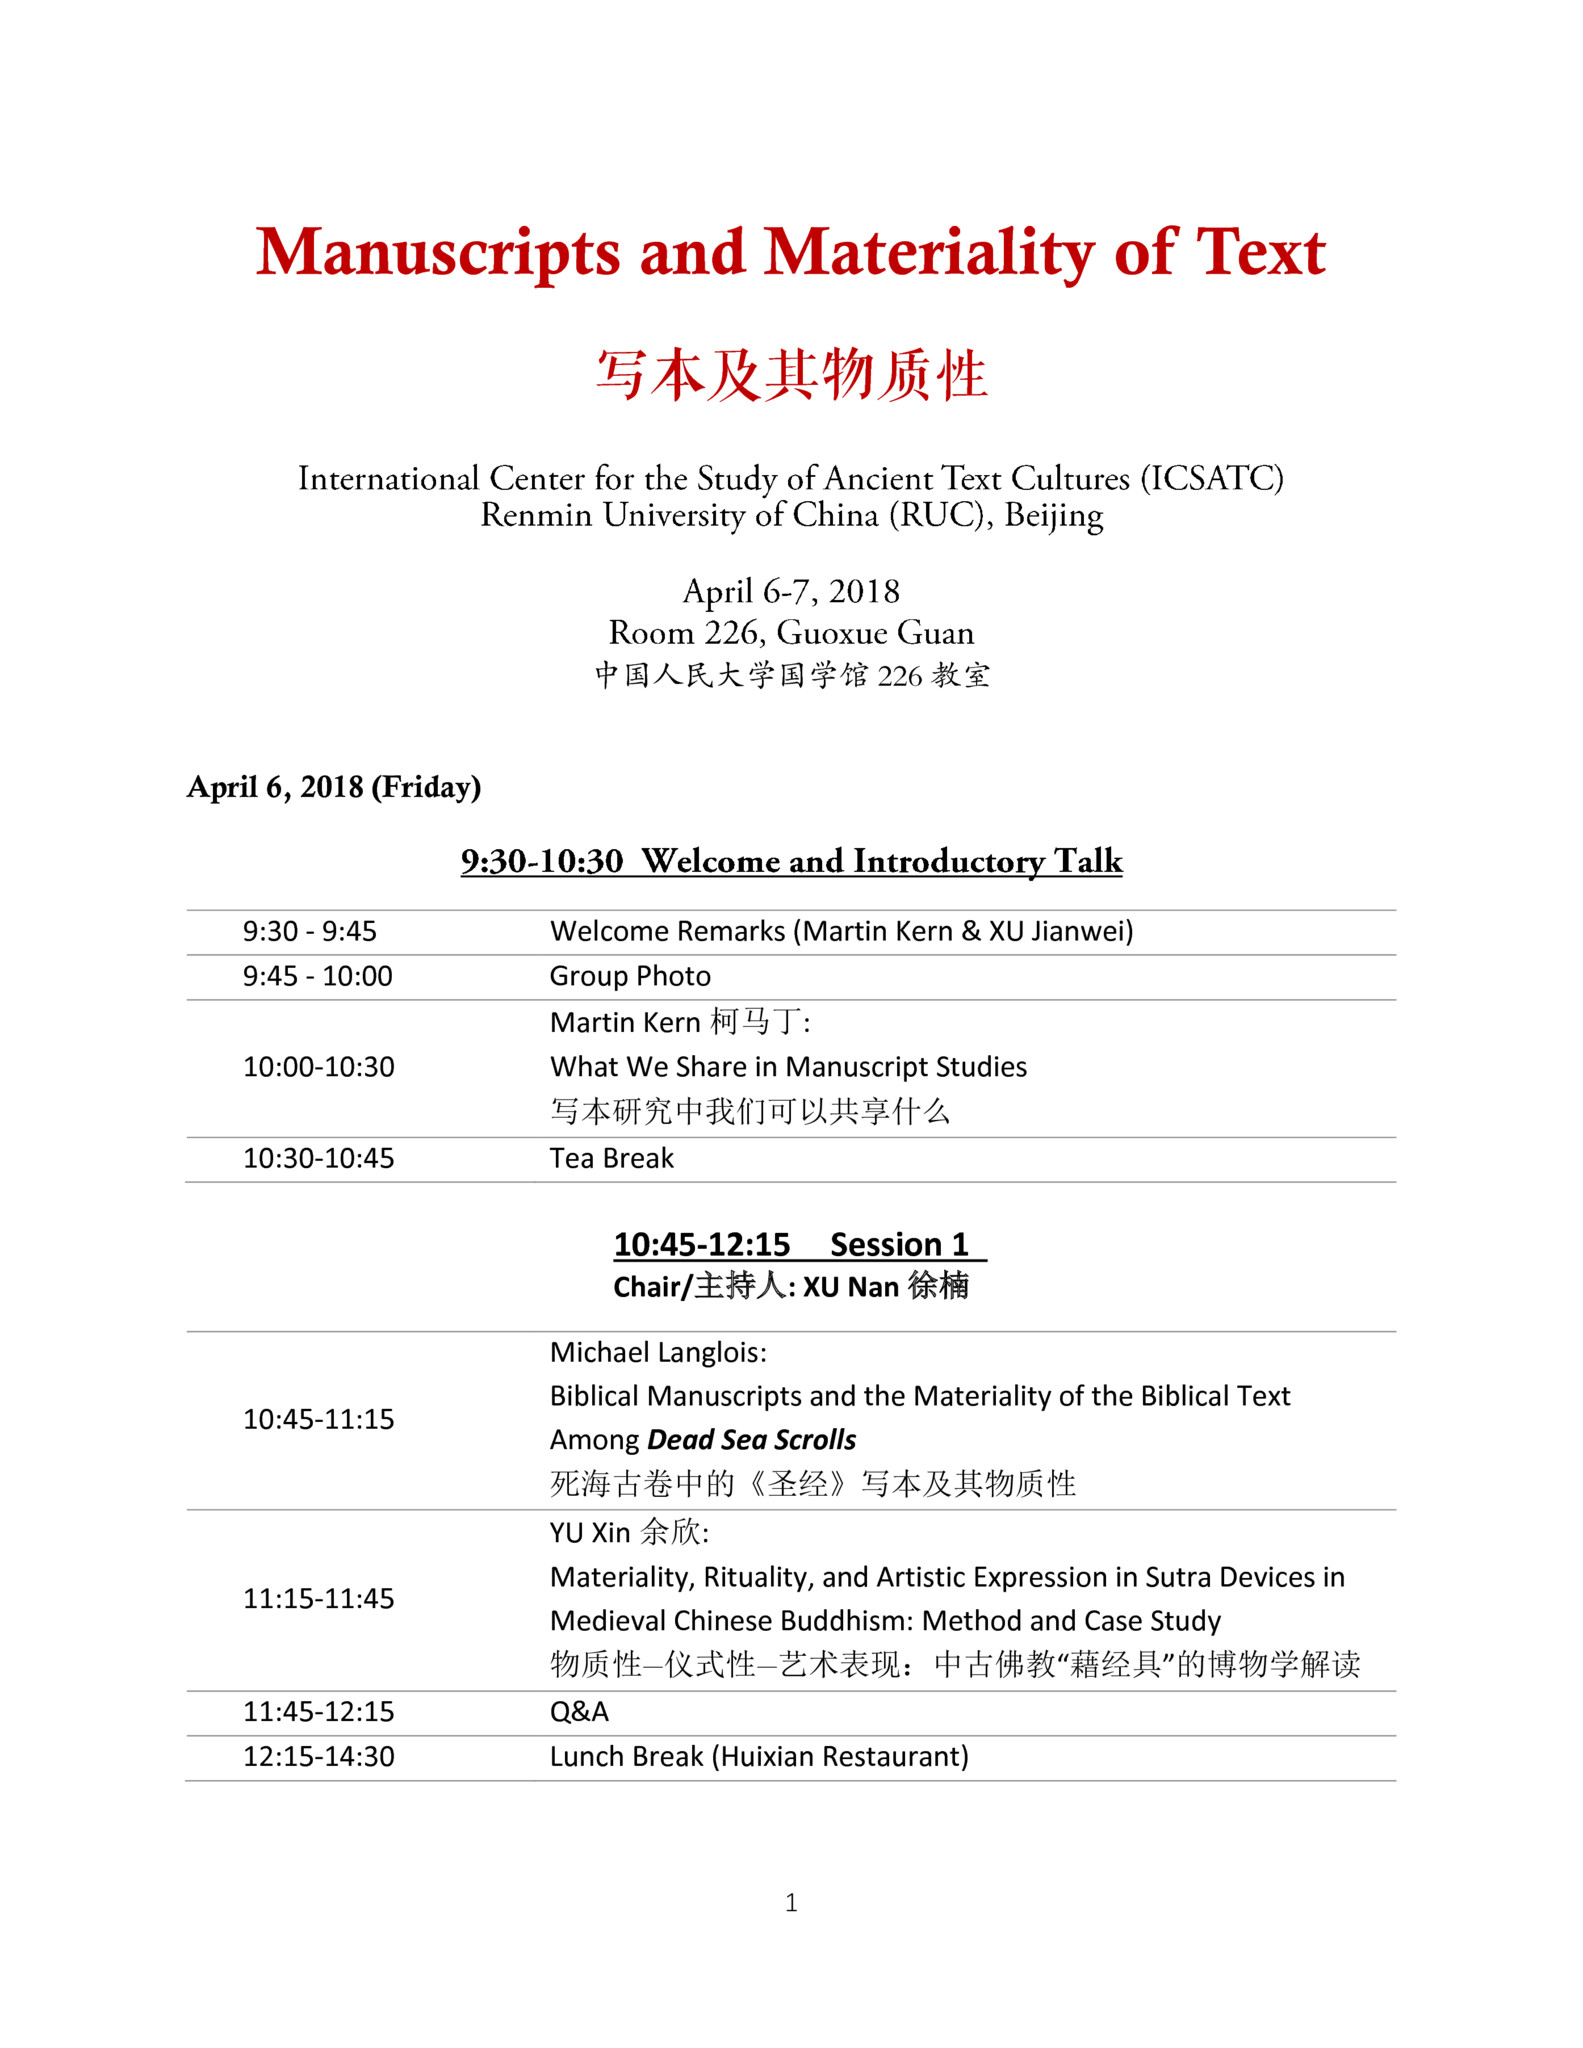 thumbnail of manuscripts and materiality of text-schedule